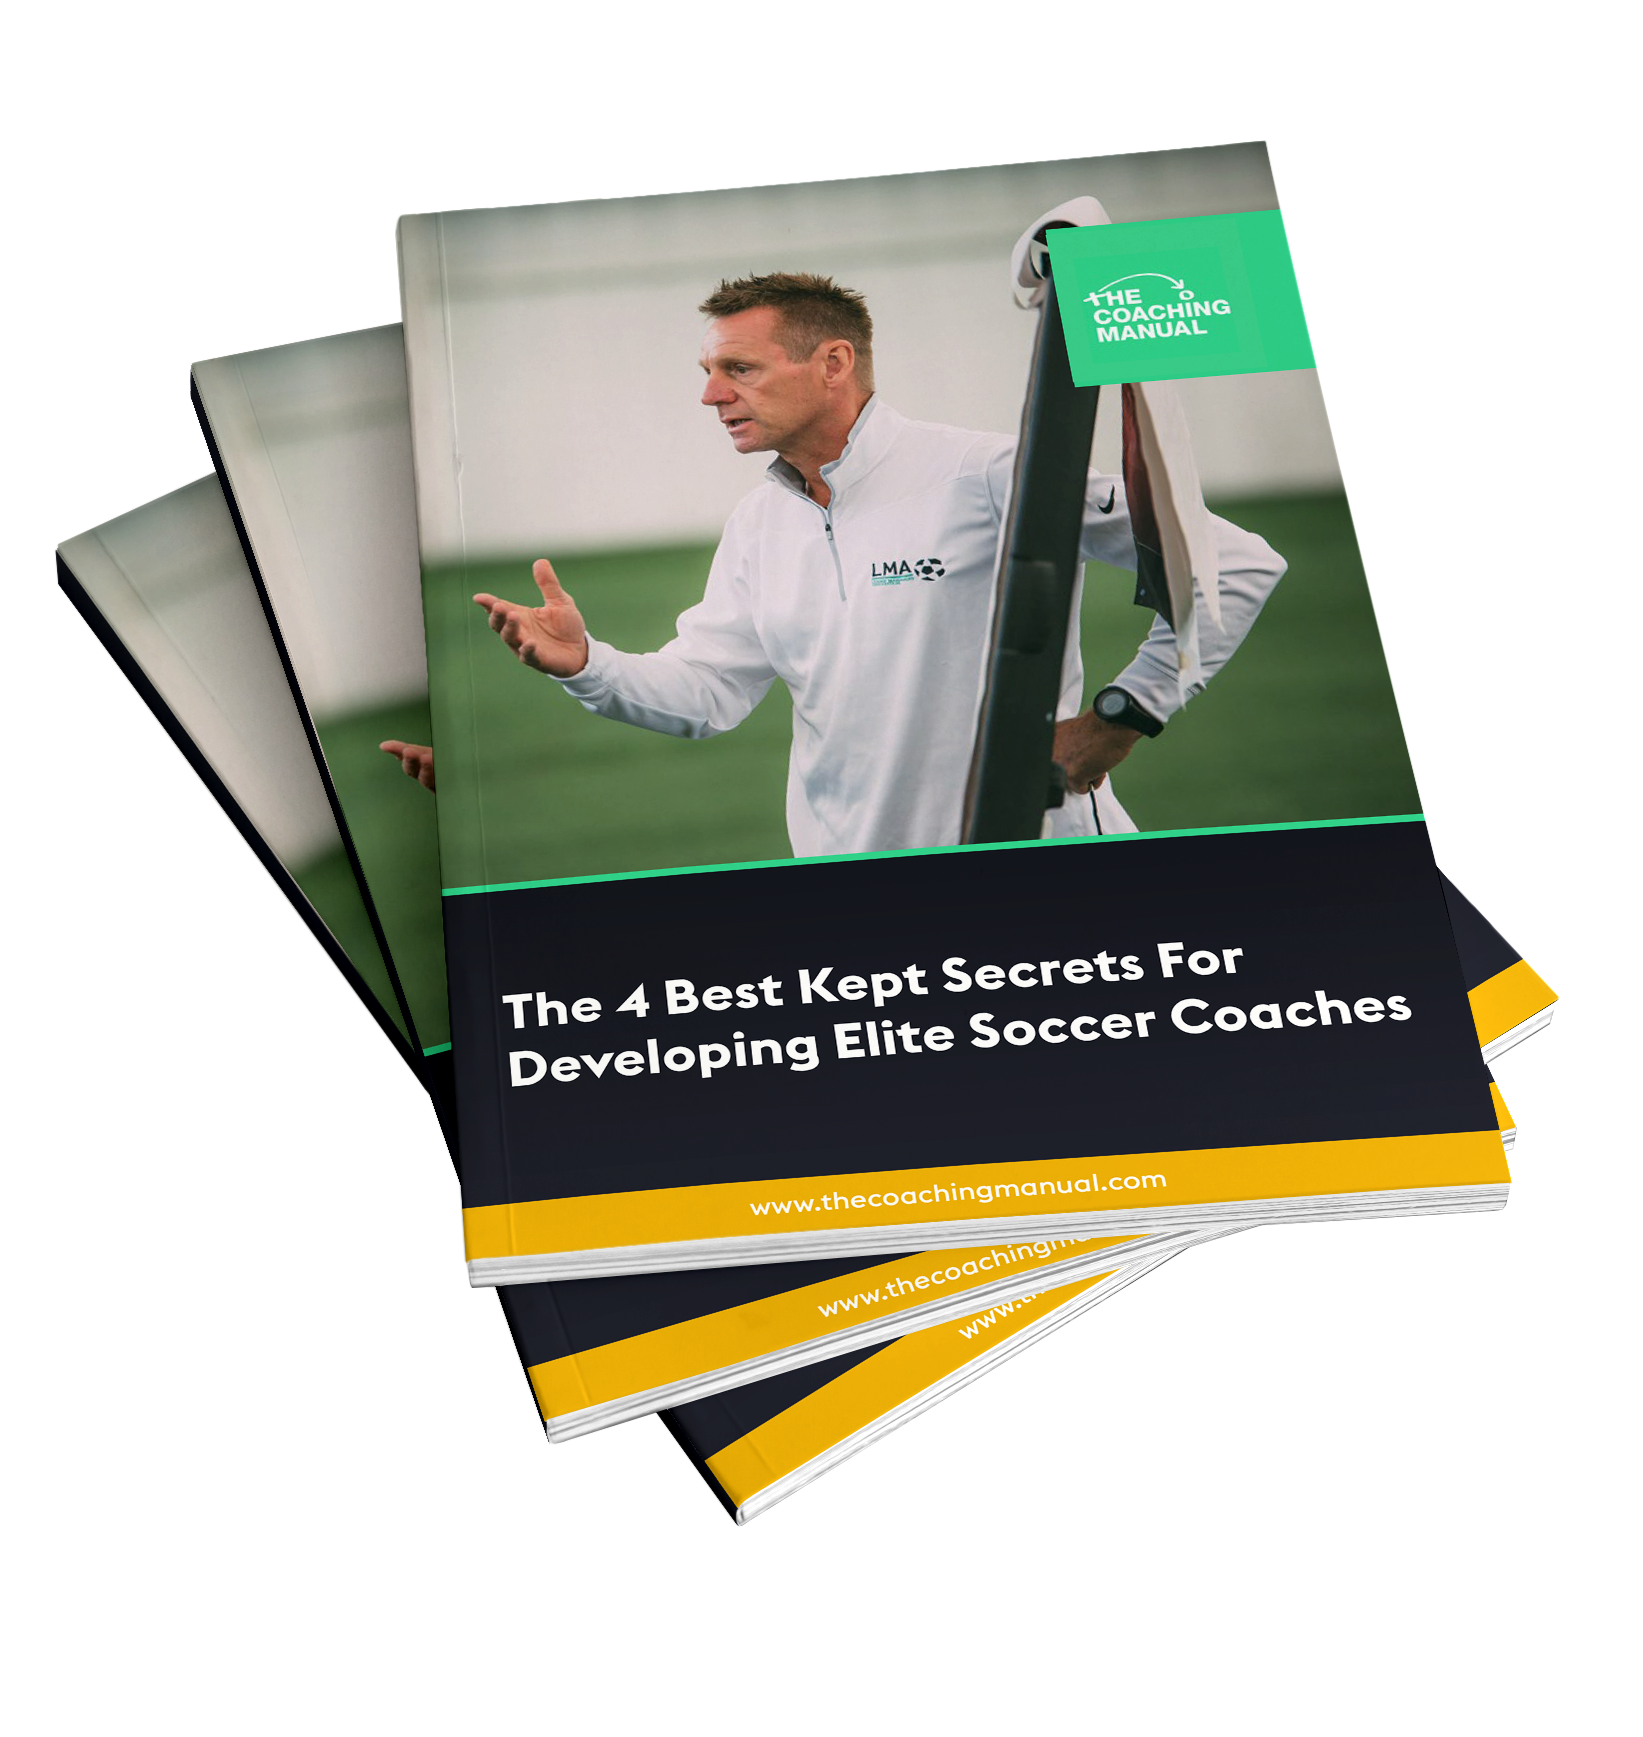 eBook-The-4-Best-Kept-Secrets-For-Developing-Elite-Soccer-Coaches-